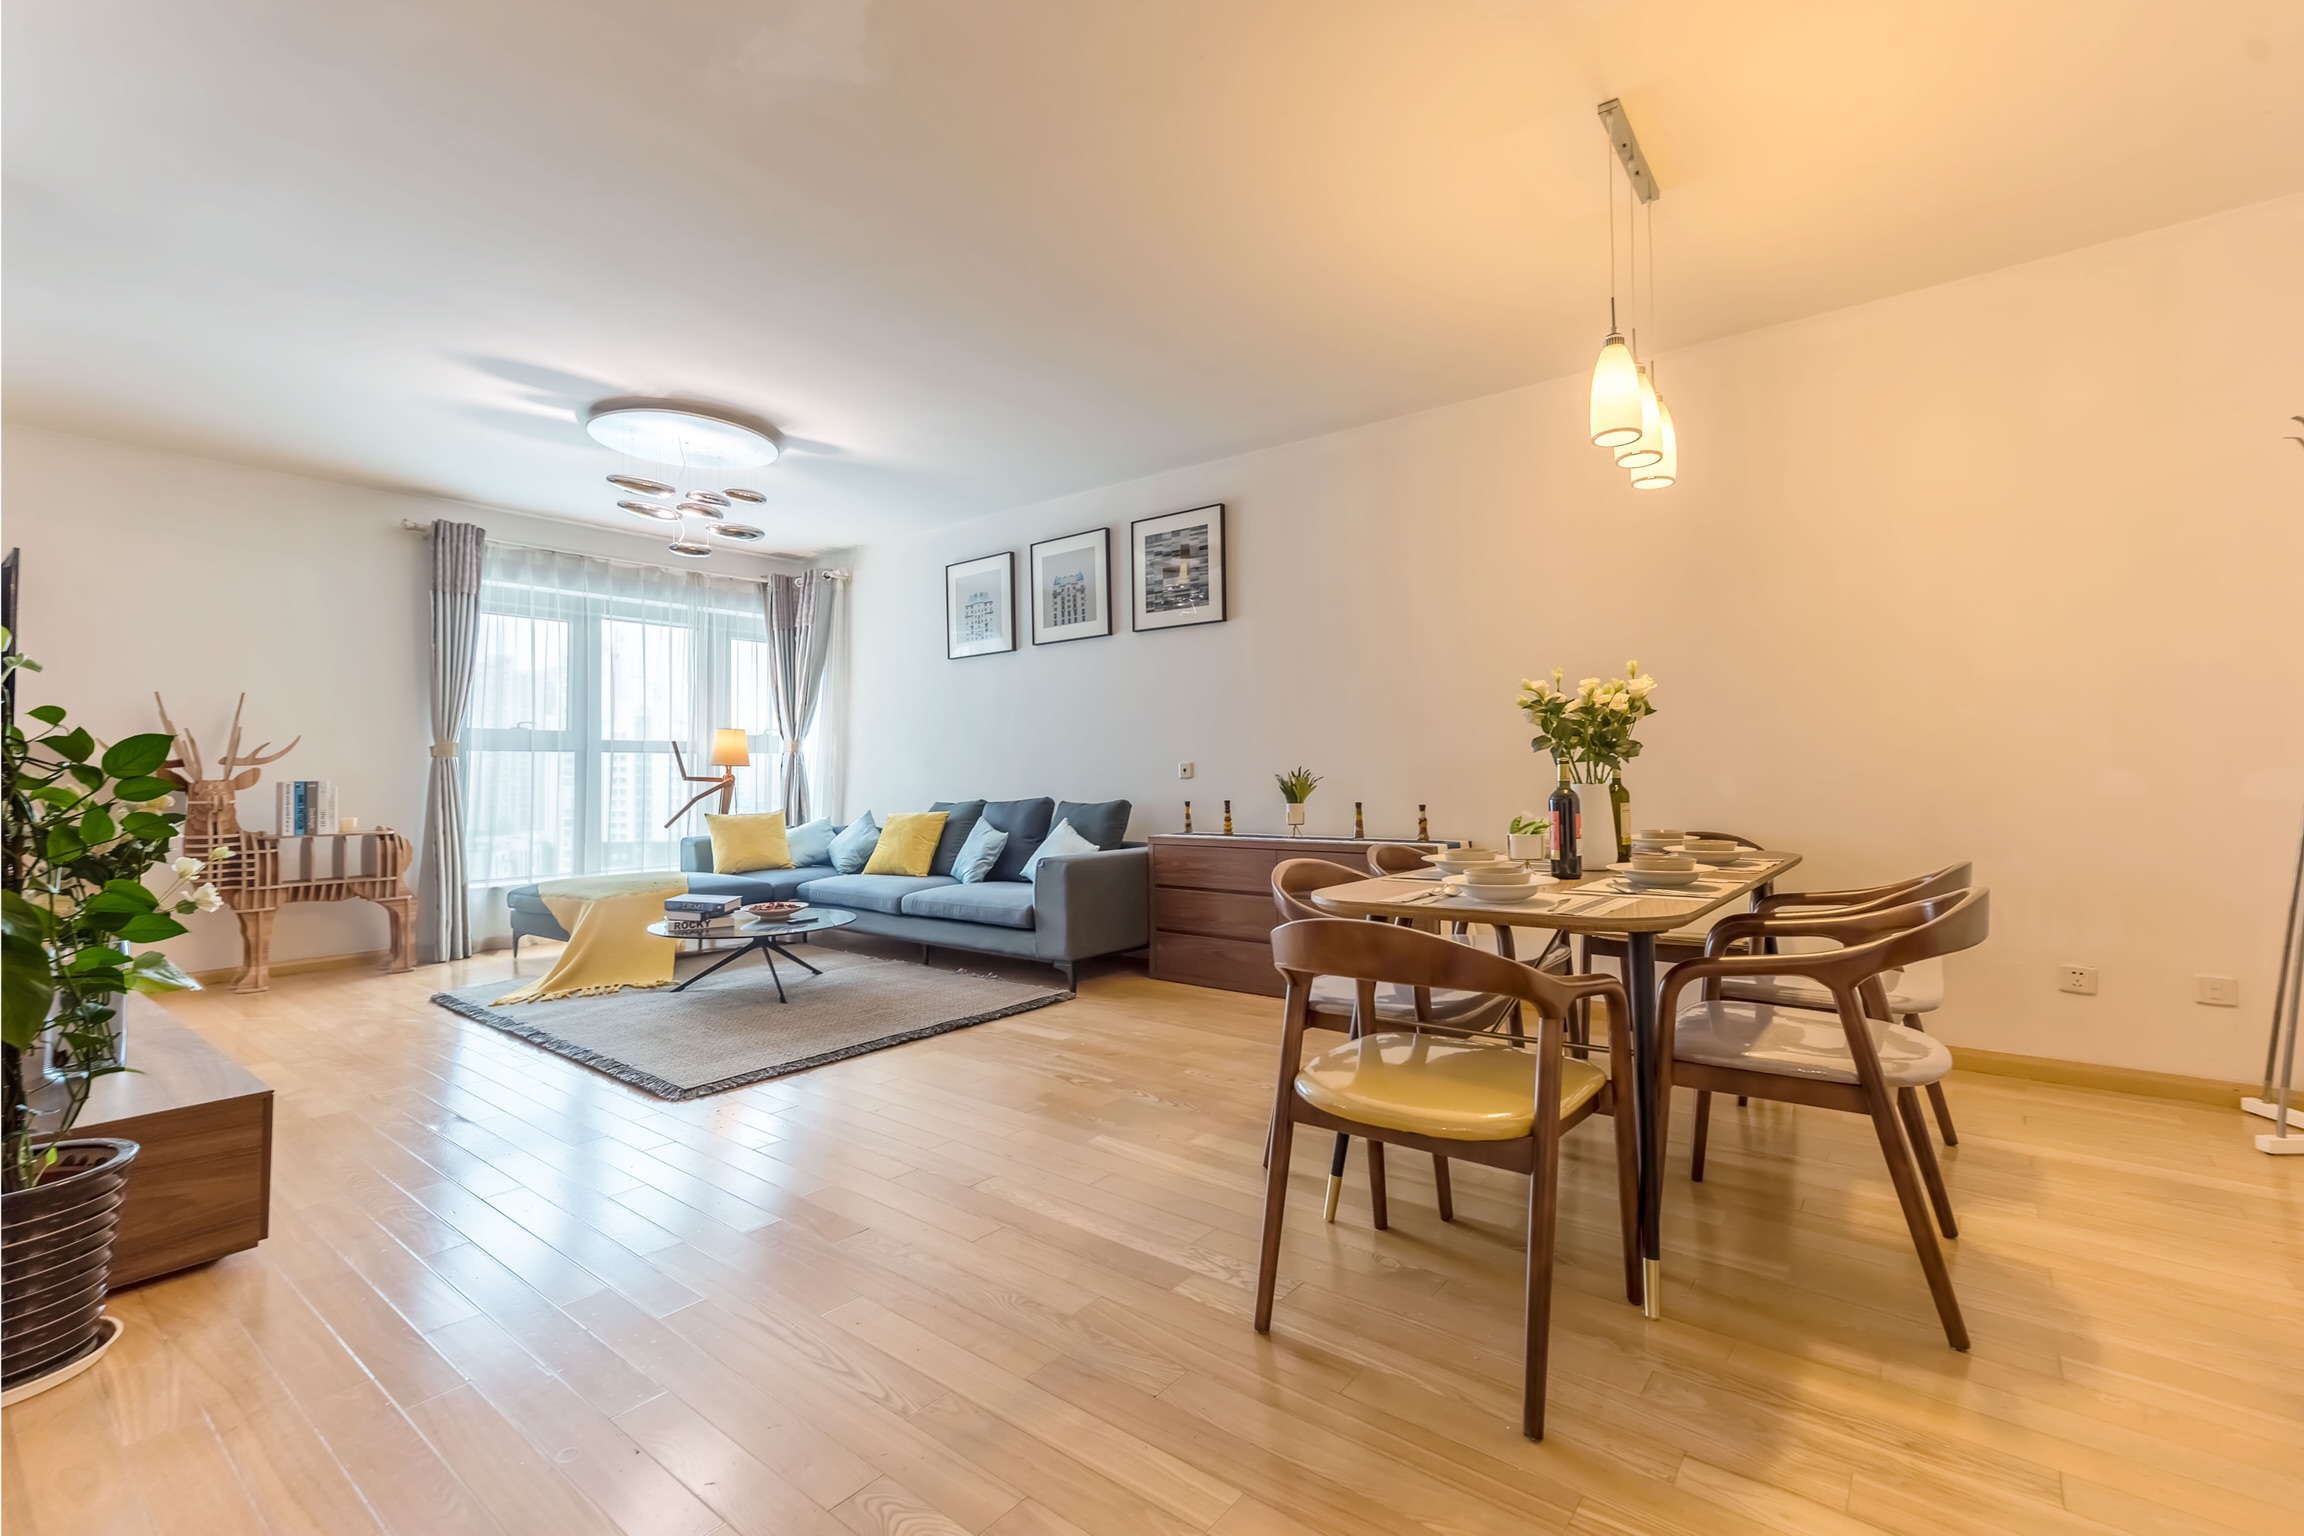 3br in 8 Park 静安豪景 With Gym and swimming pool JIngan